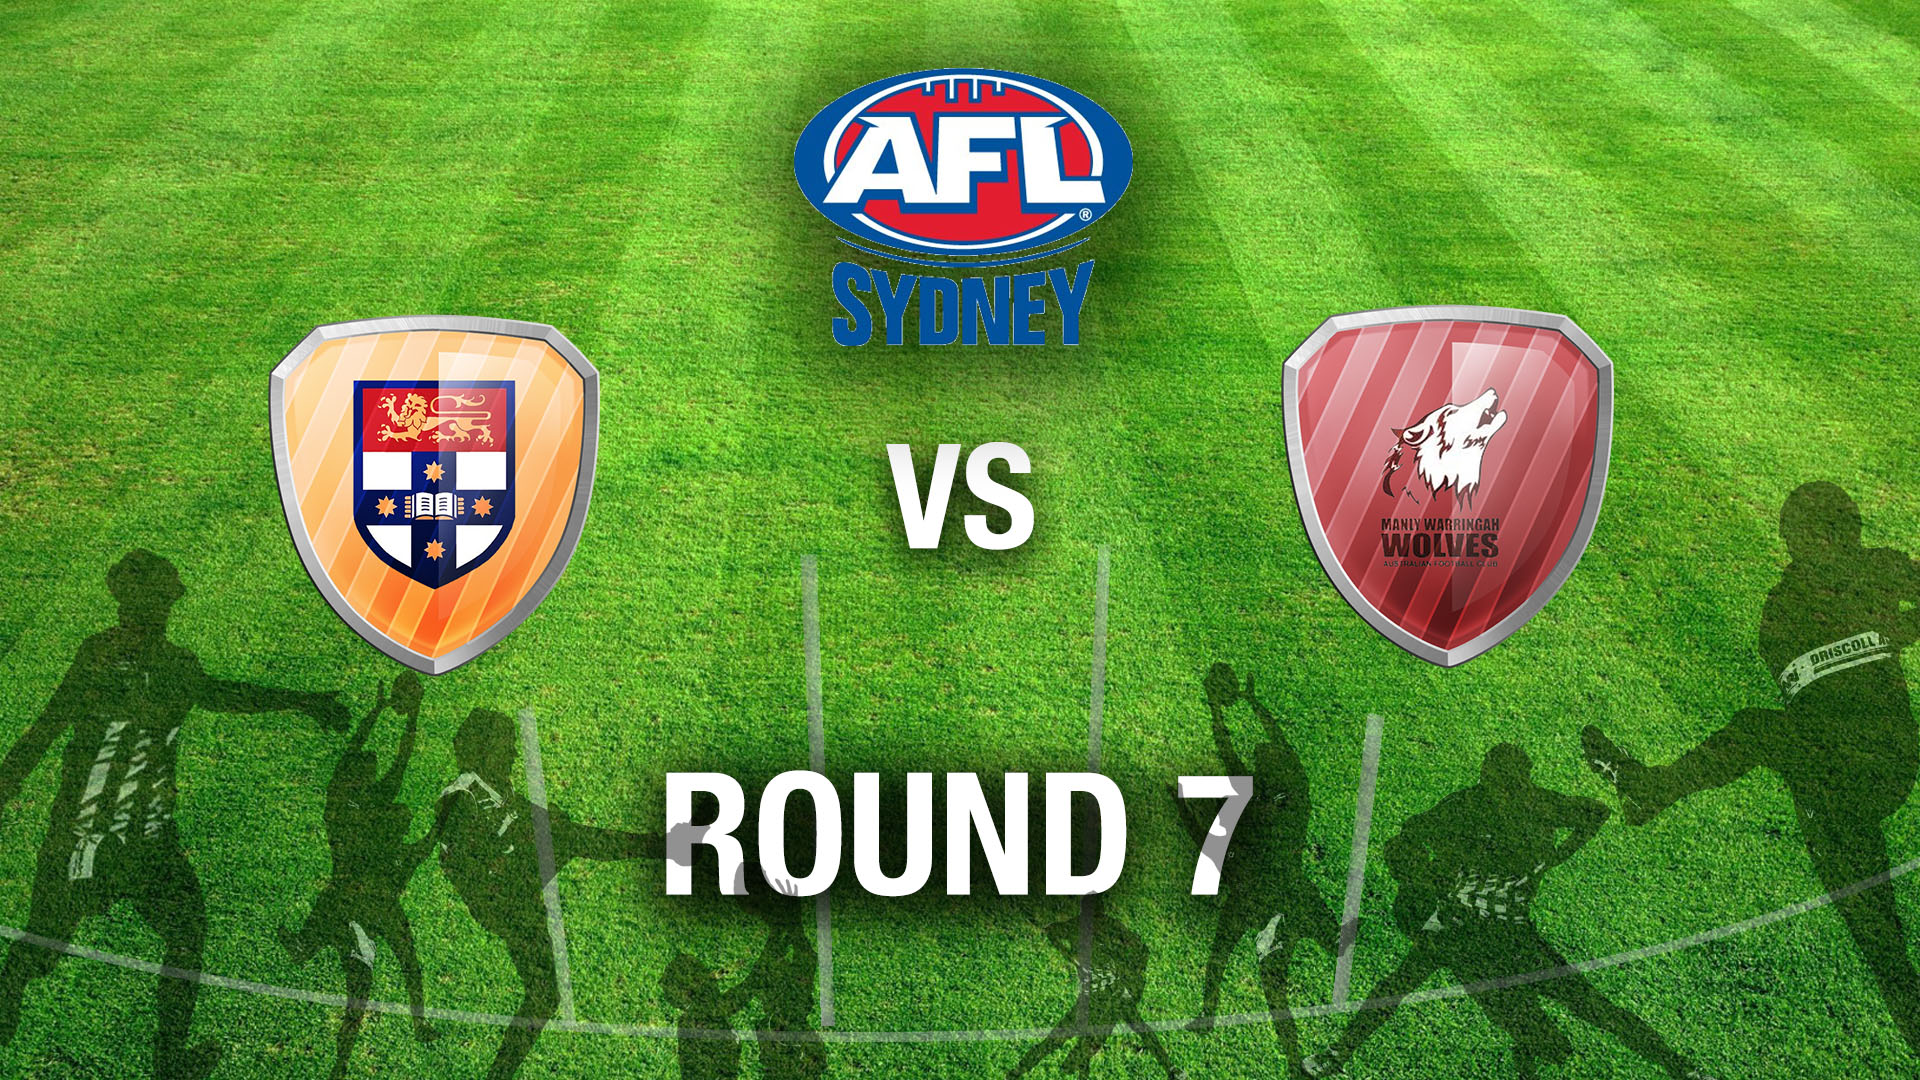 RD 7 Sydney University v Manly Warringah